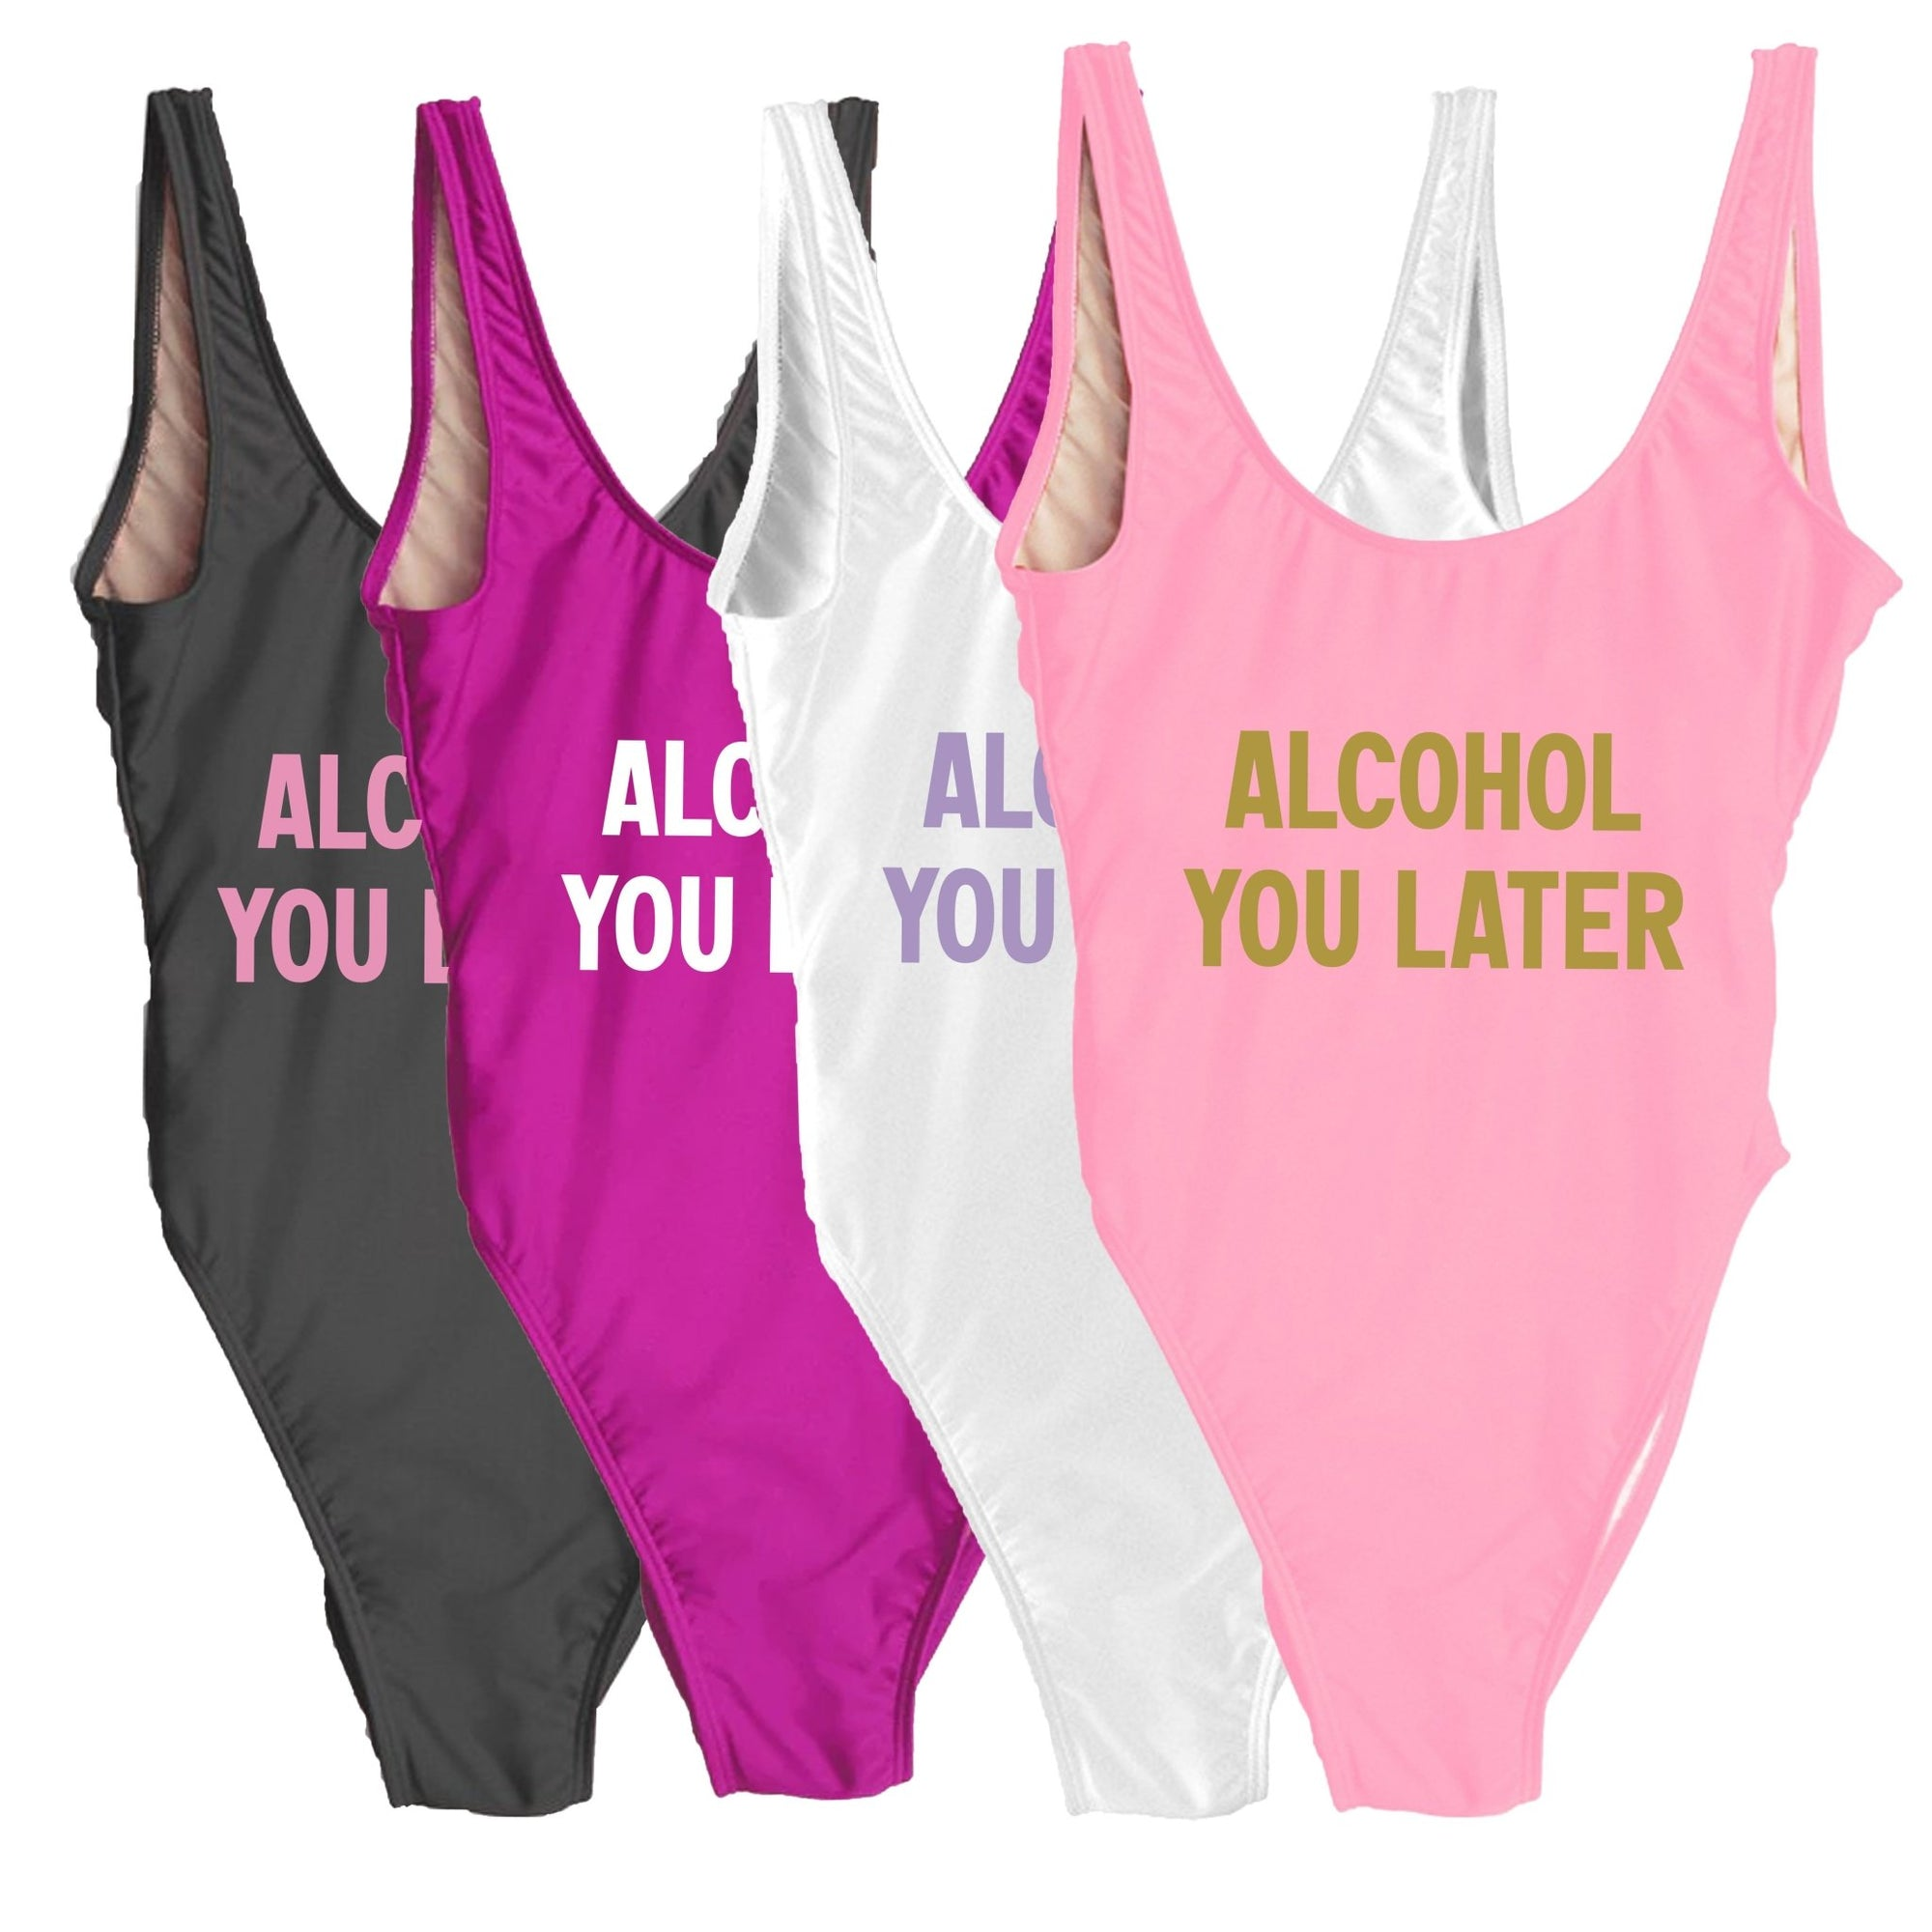 Alcohol You Later Swimsuit - Sprinkled With Pink #bachelorette #custom #gifts